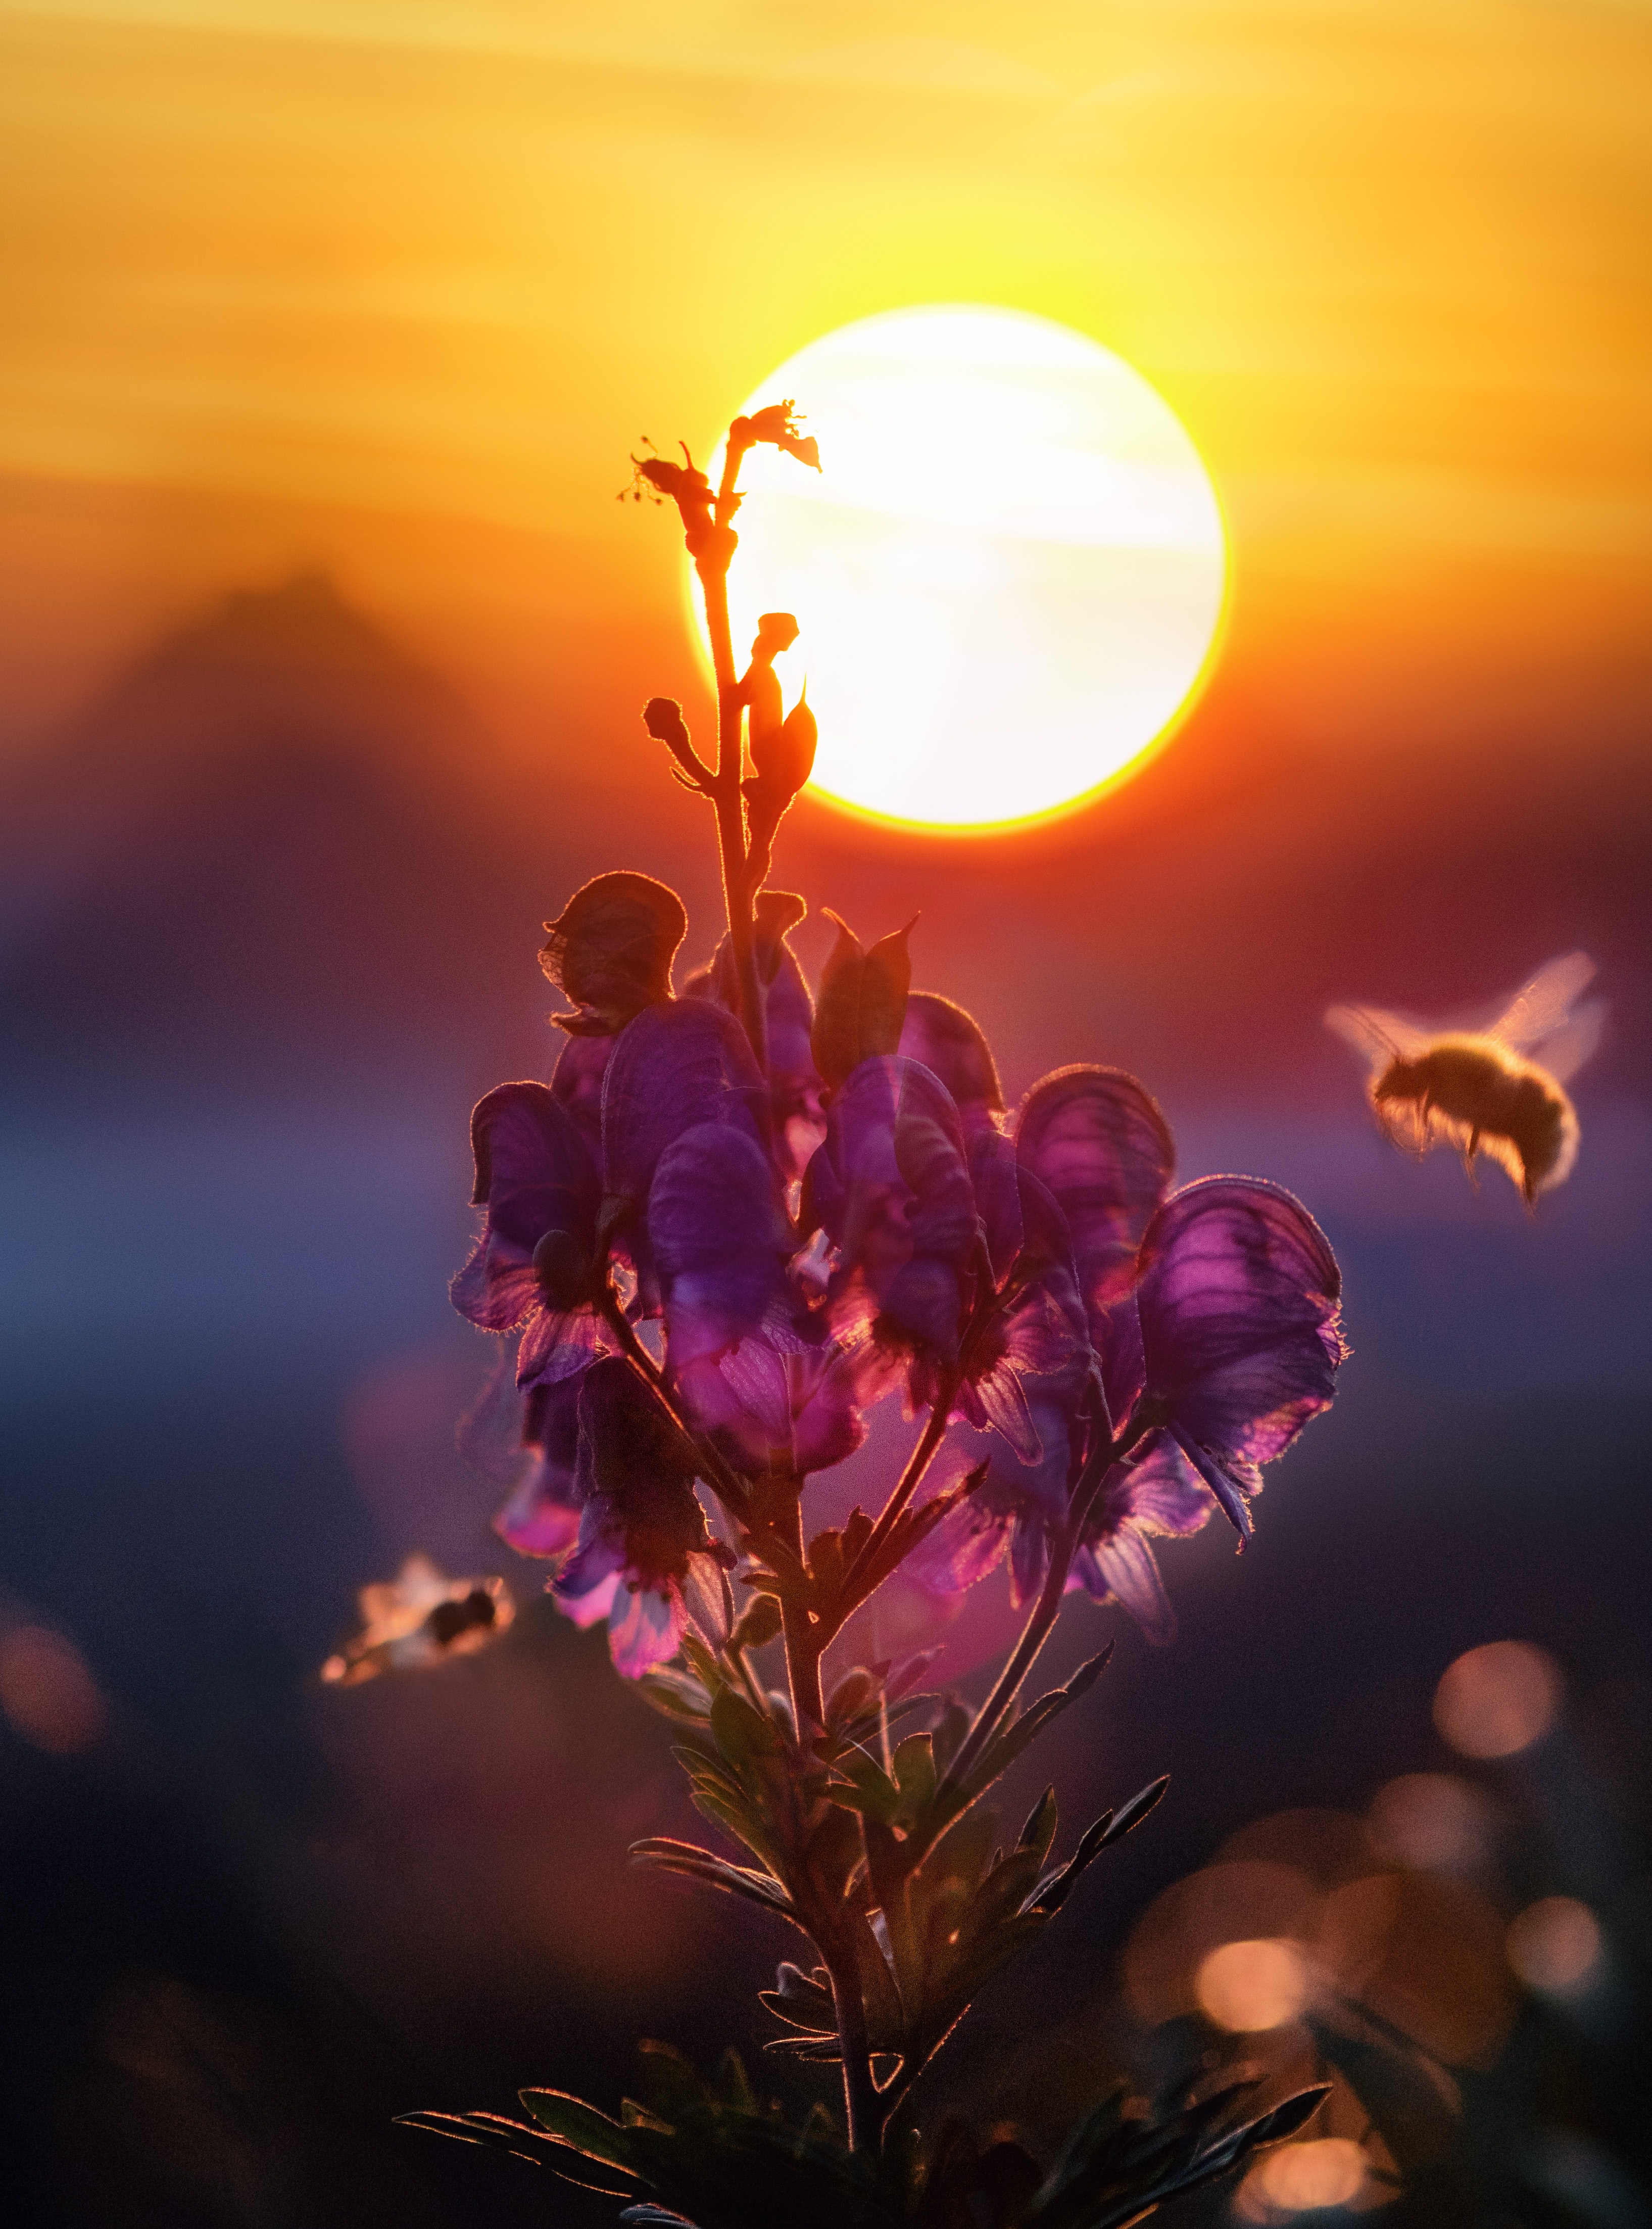 Purple flowers with a bright sunset in the background.